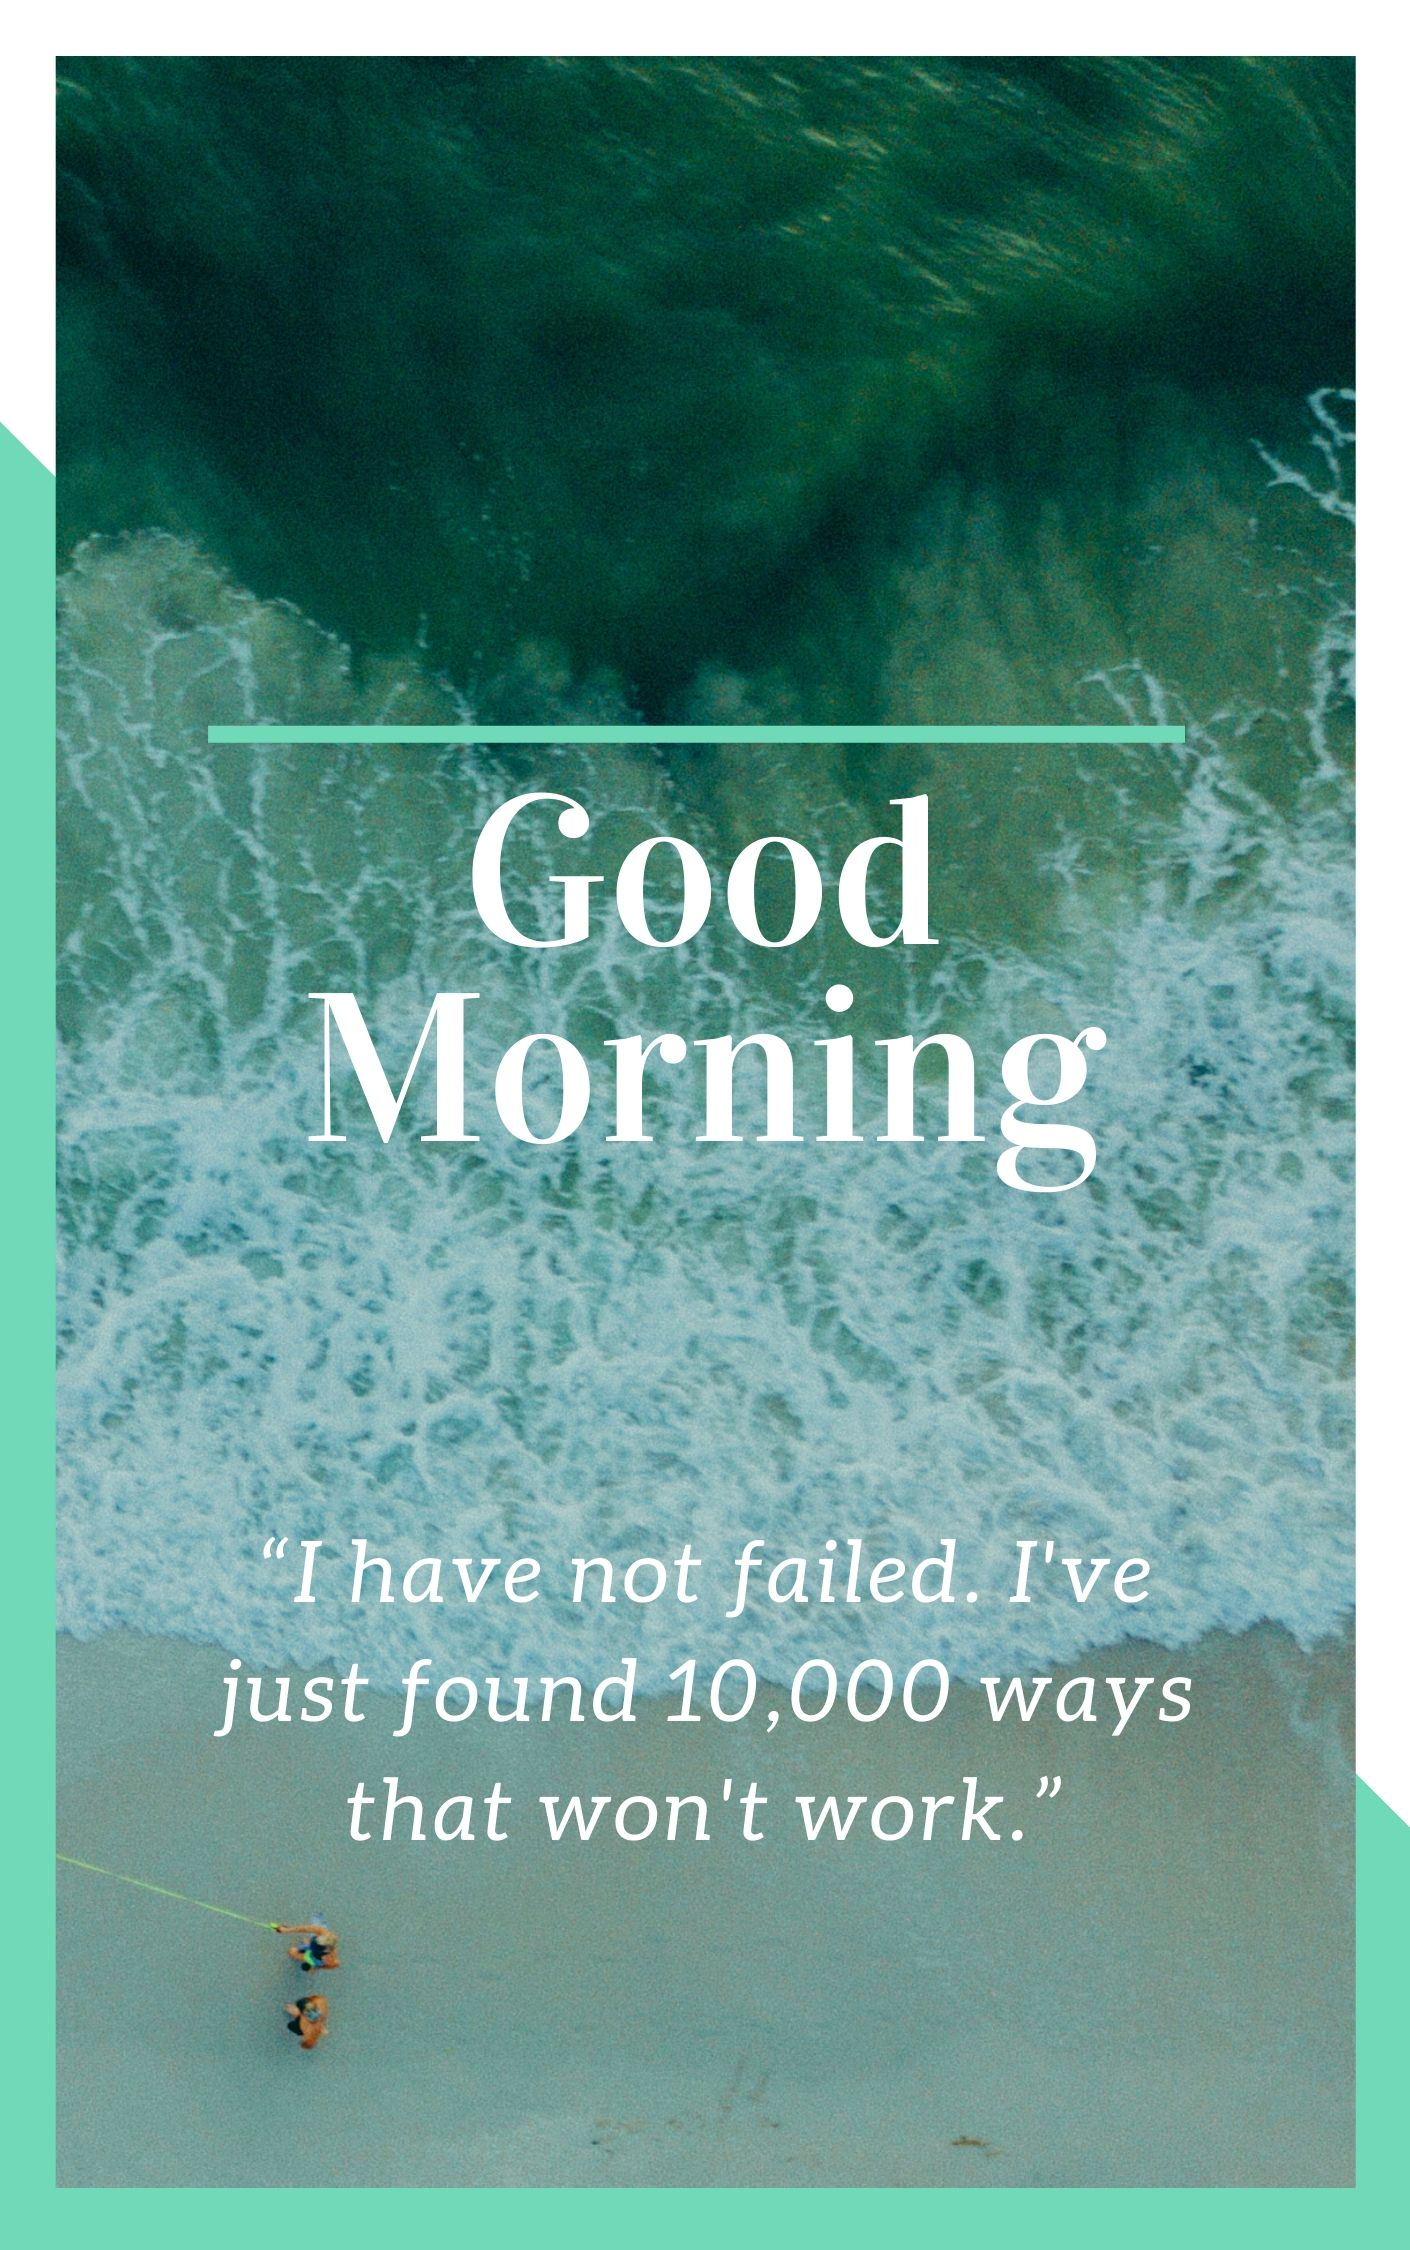 Good Morning good images with quotes I ahve not failed. Ive just found 10000 ways that wont work. full HD free download.